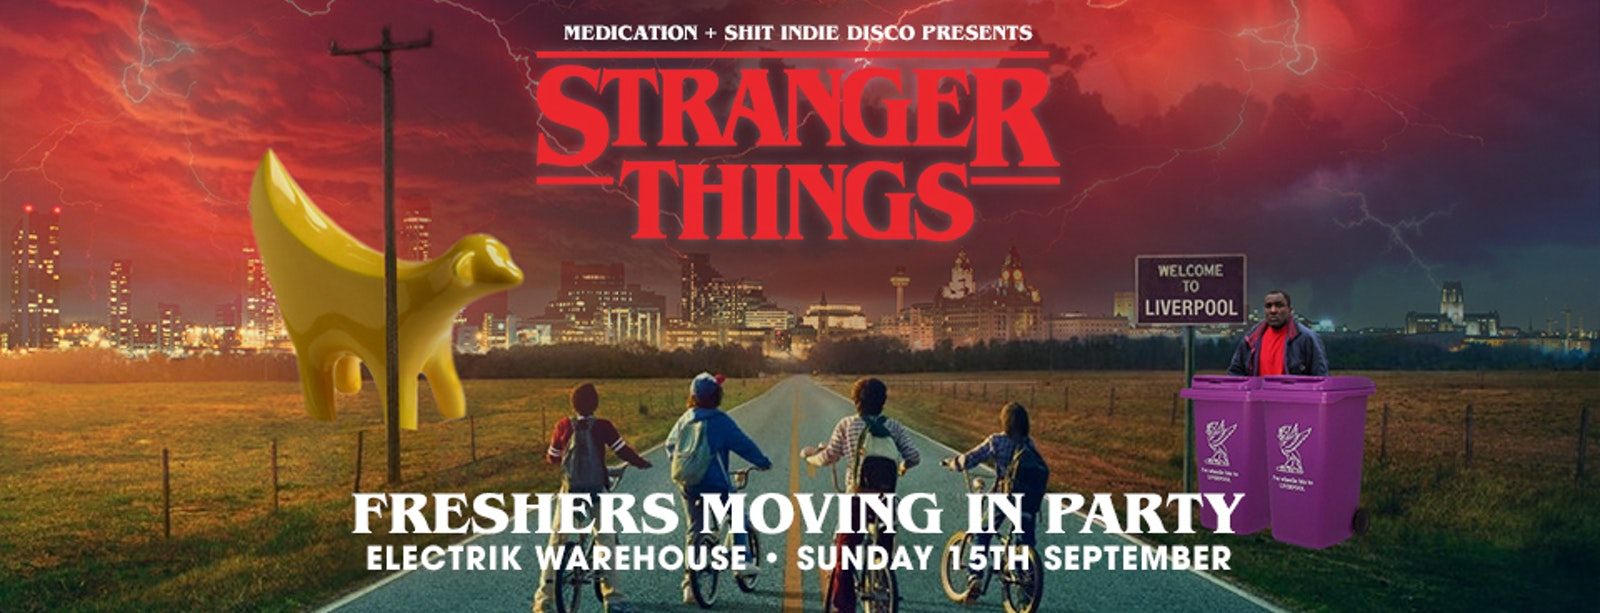 STRANGER THINGS FRESHER'S MOVING IN PARTY